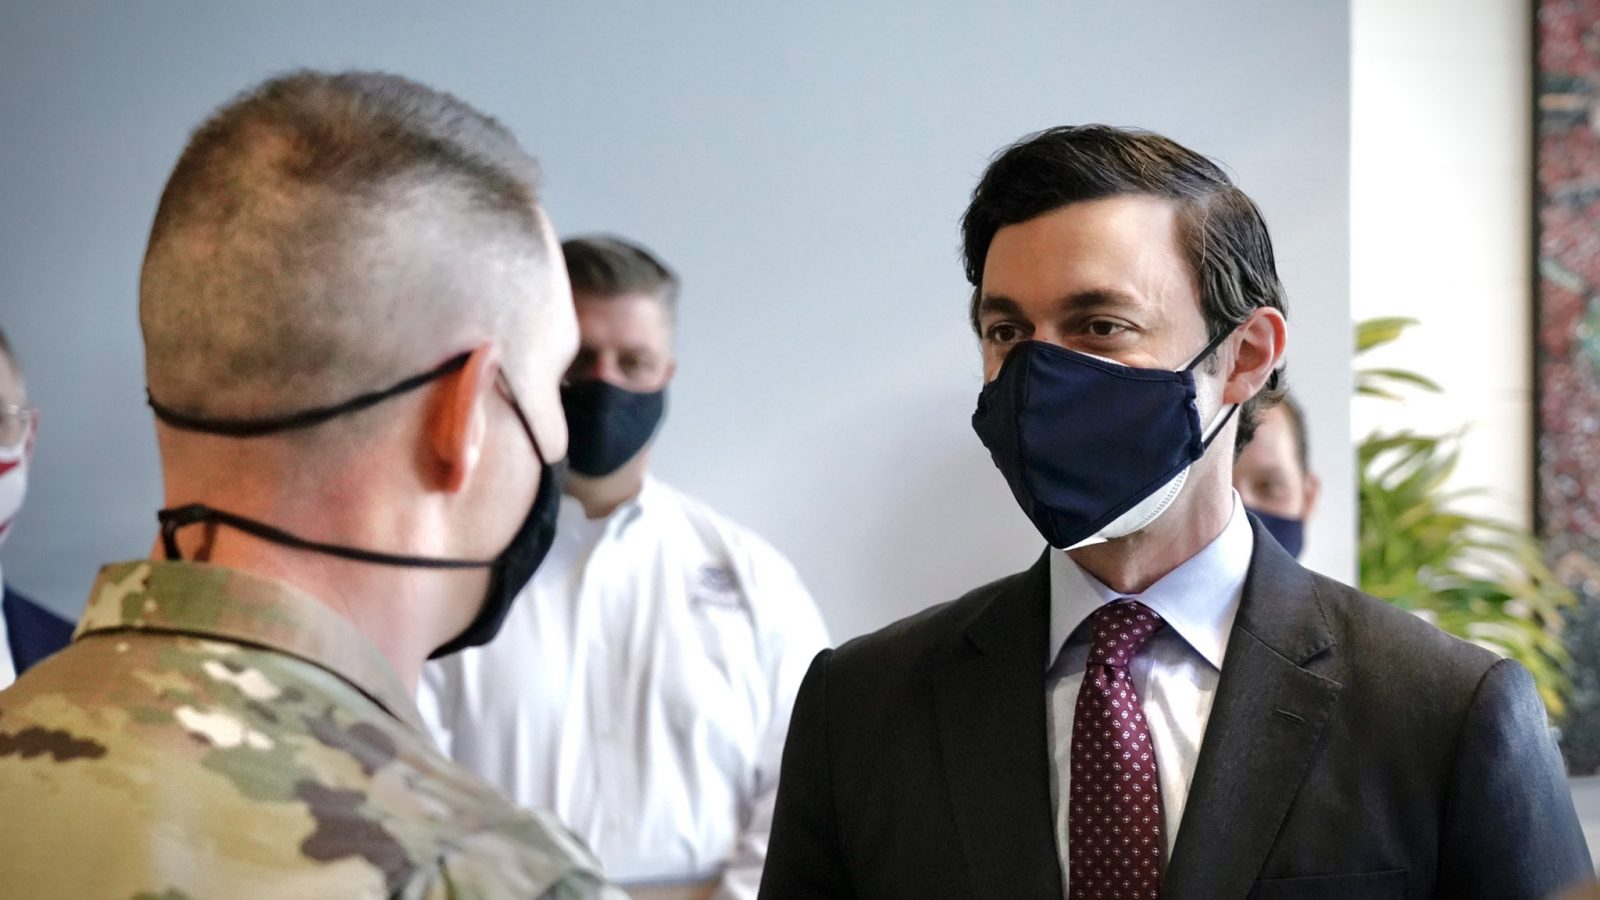 Sen. Jon Ossoff, wearing a black face mask, meets with a member of the military